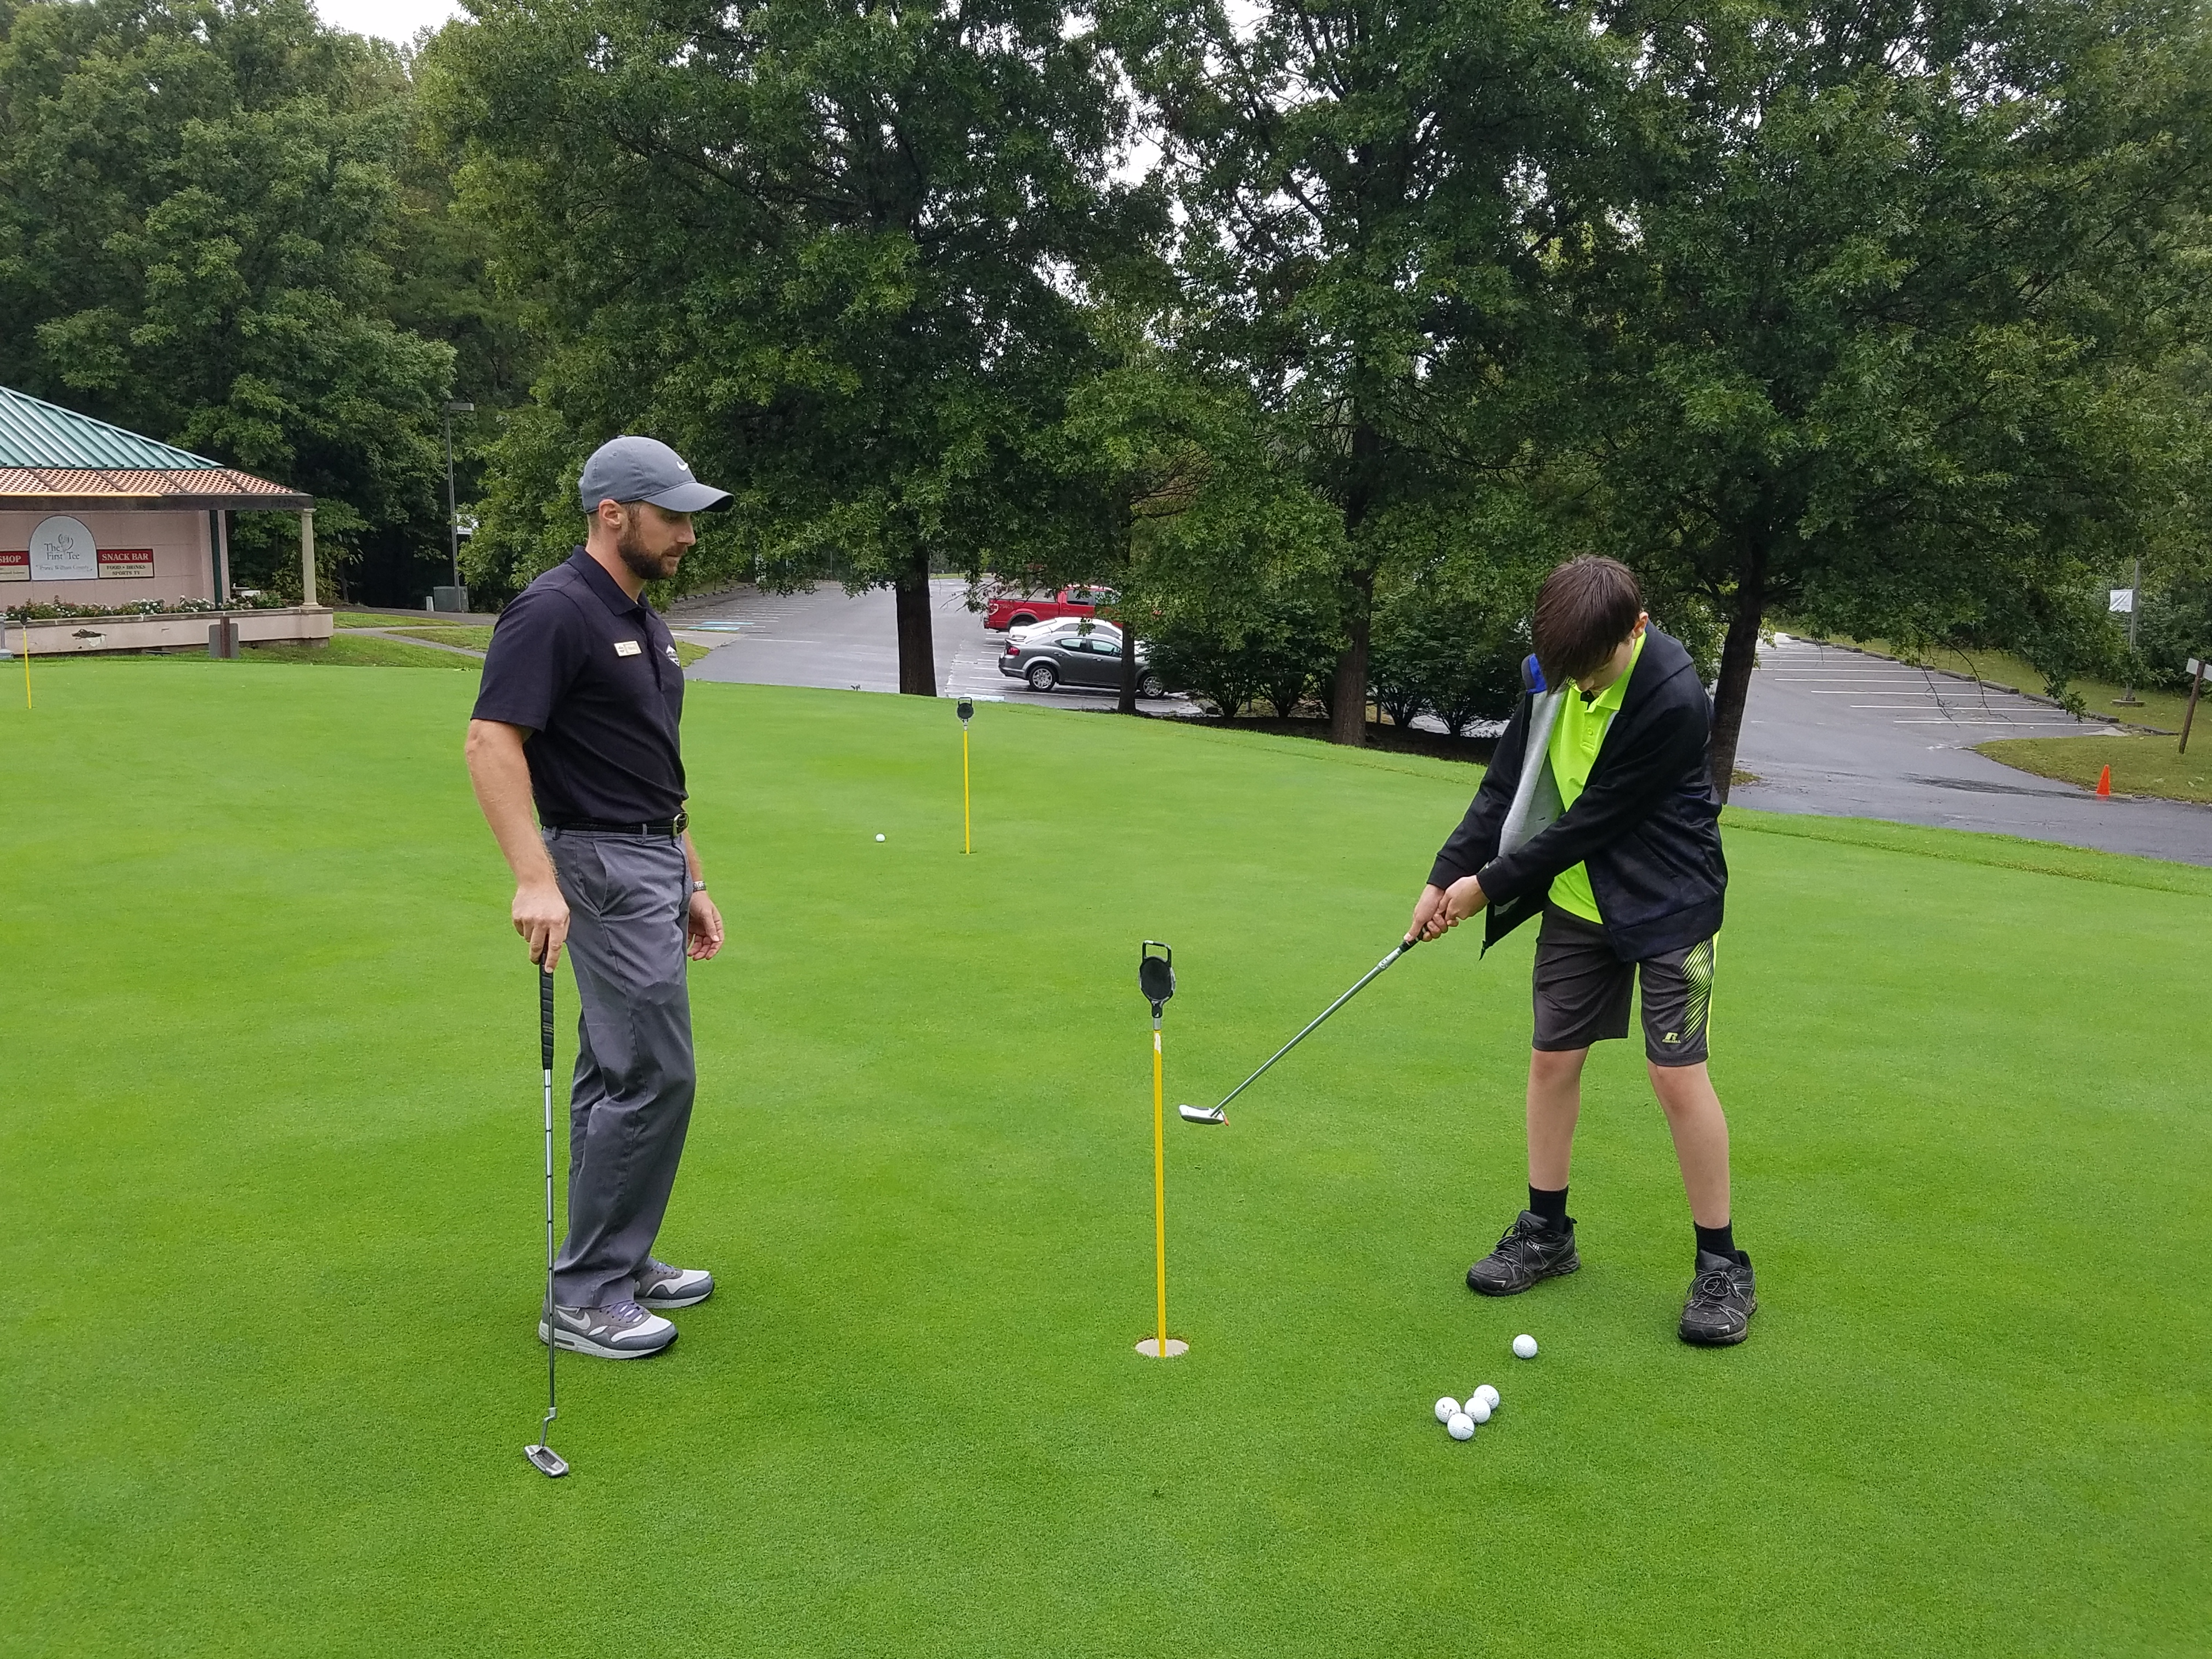 Our Head Golf Pro giving putting lessons to junior golfer at Lake Ridge Golf Course